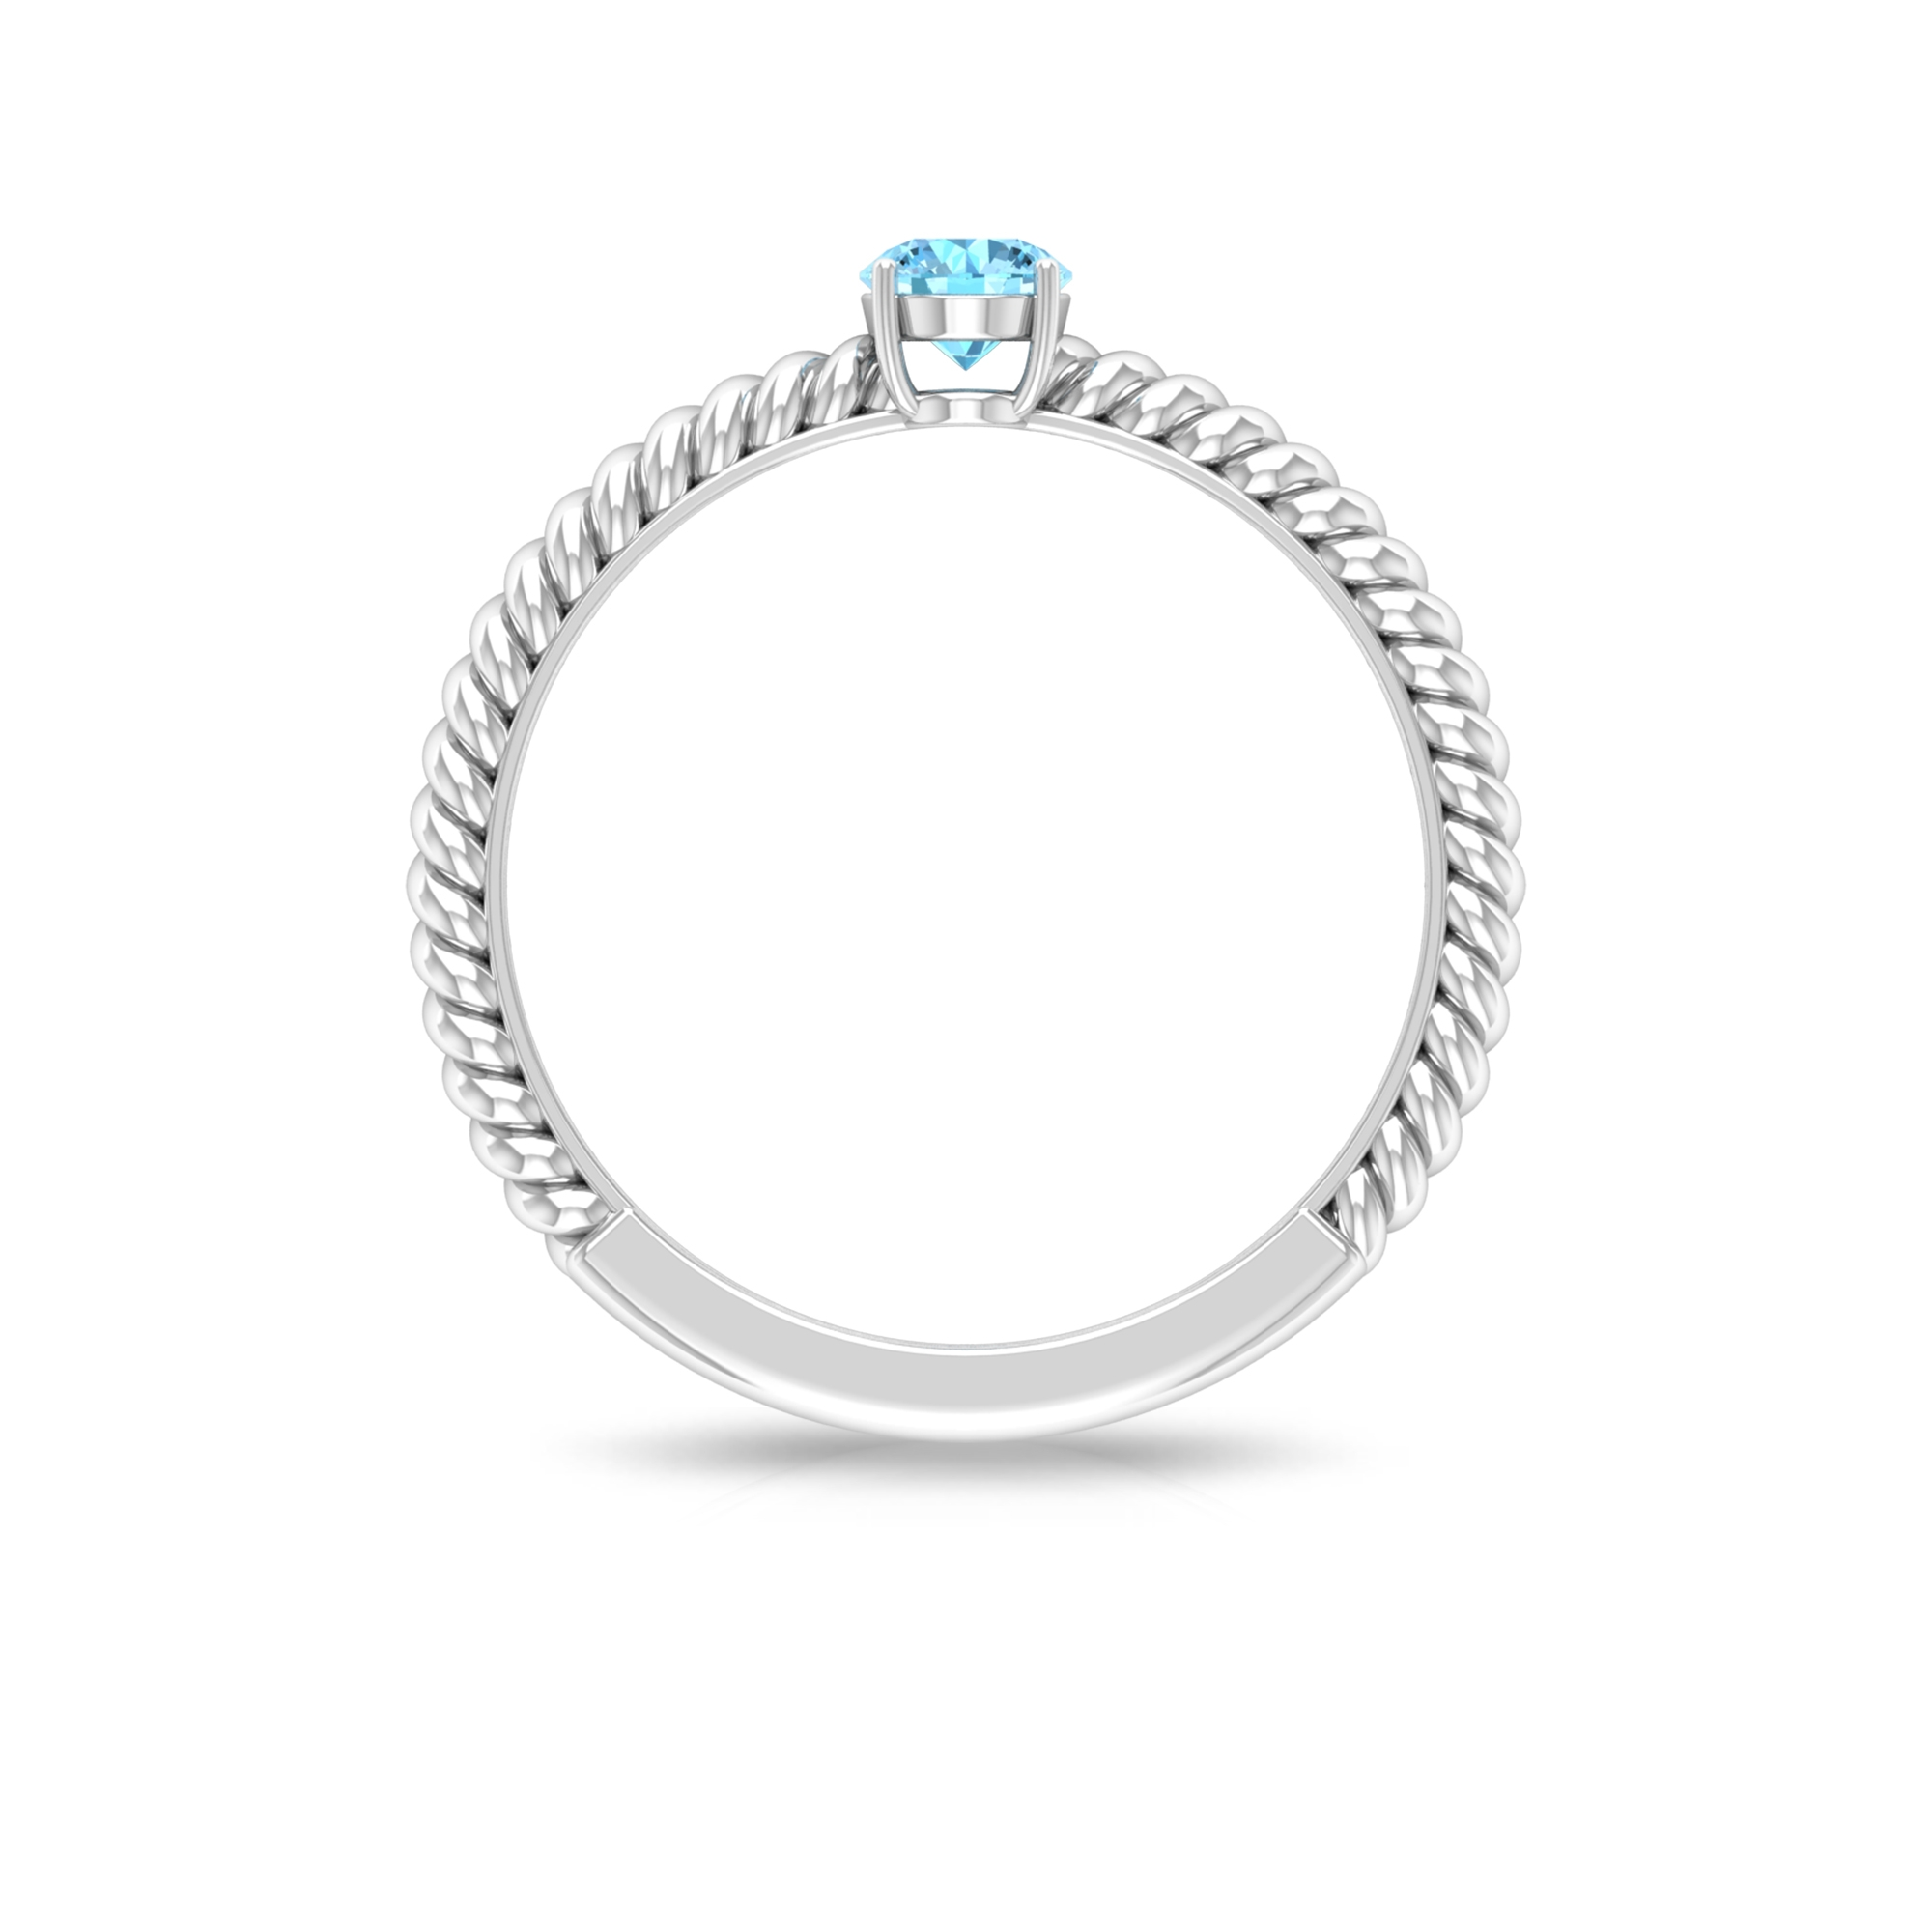 4 MM Prong Set Round Cut Aquamarine Solitaire Ring with Twisted Rope Shank